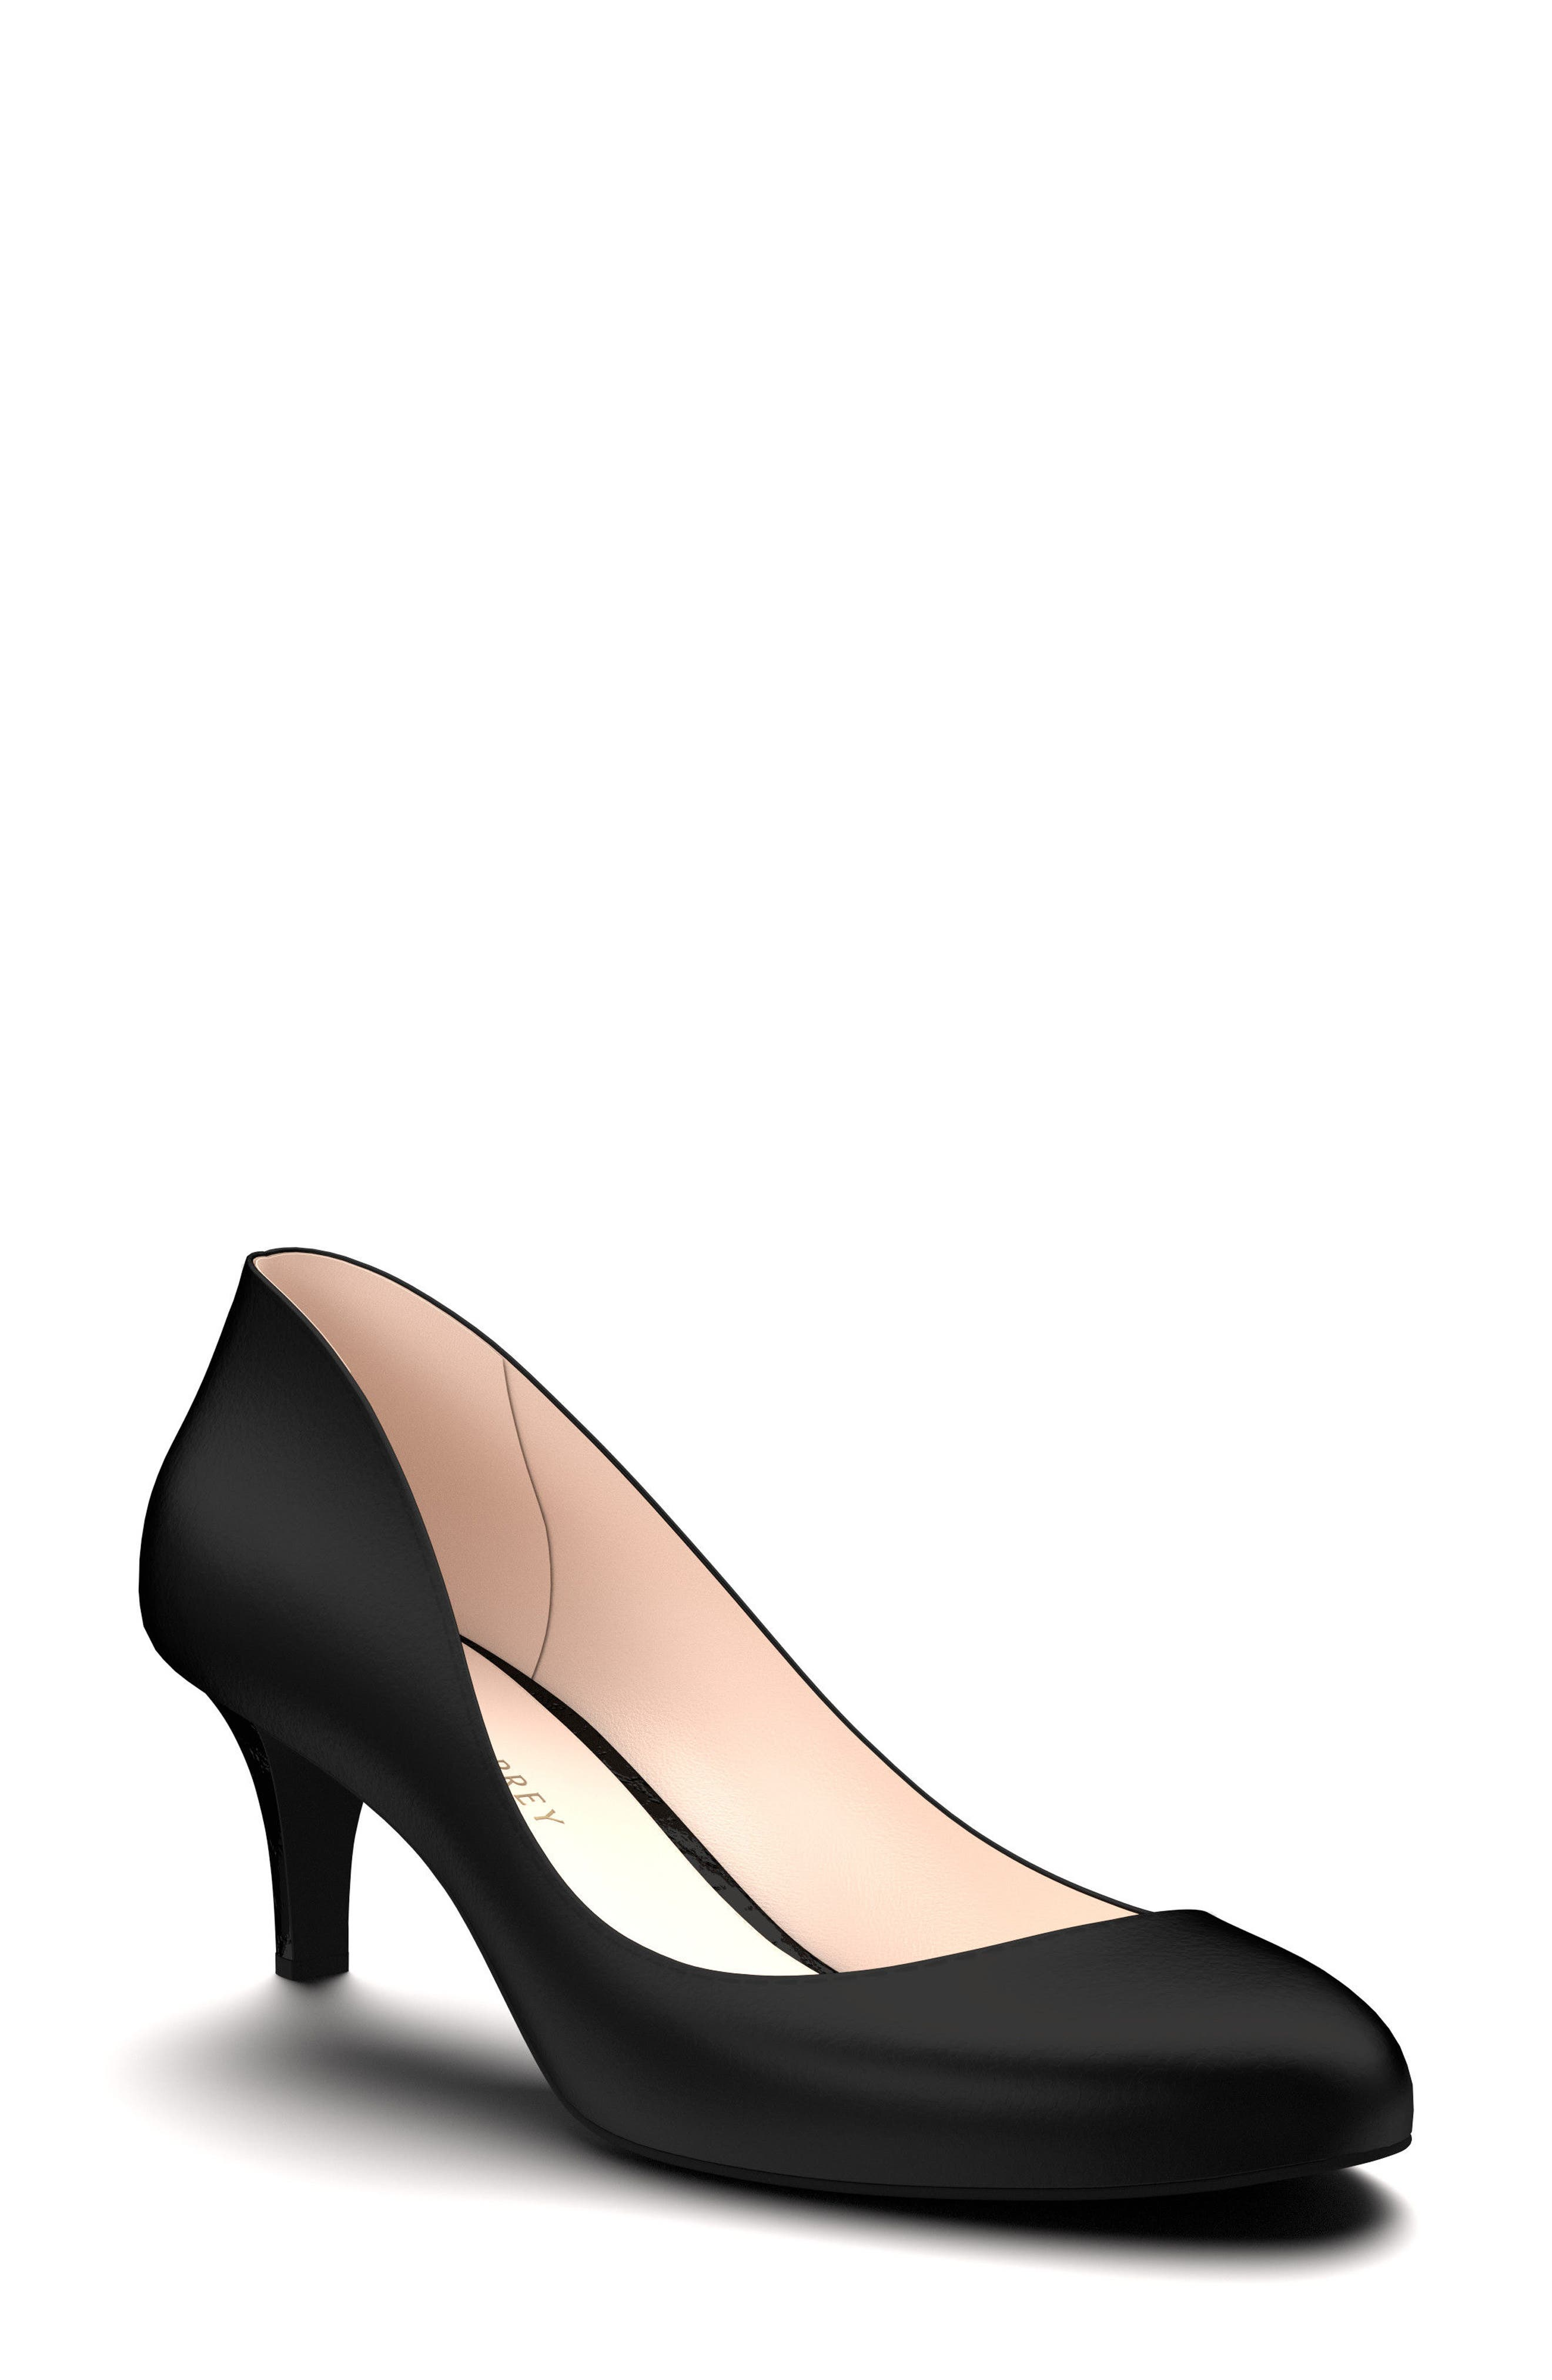 Shoes of Prey Kitten Heel Pump (Women)